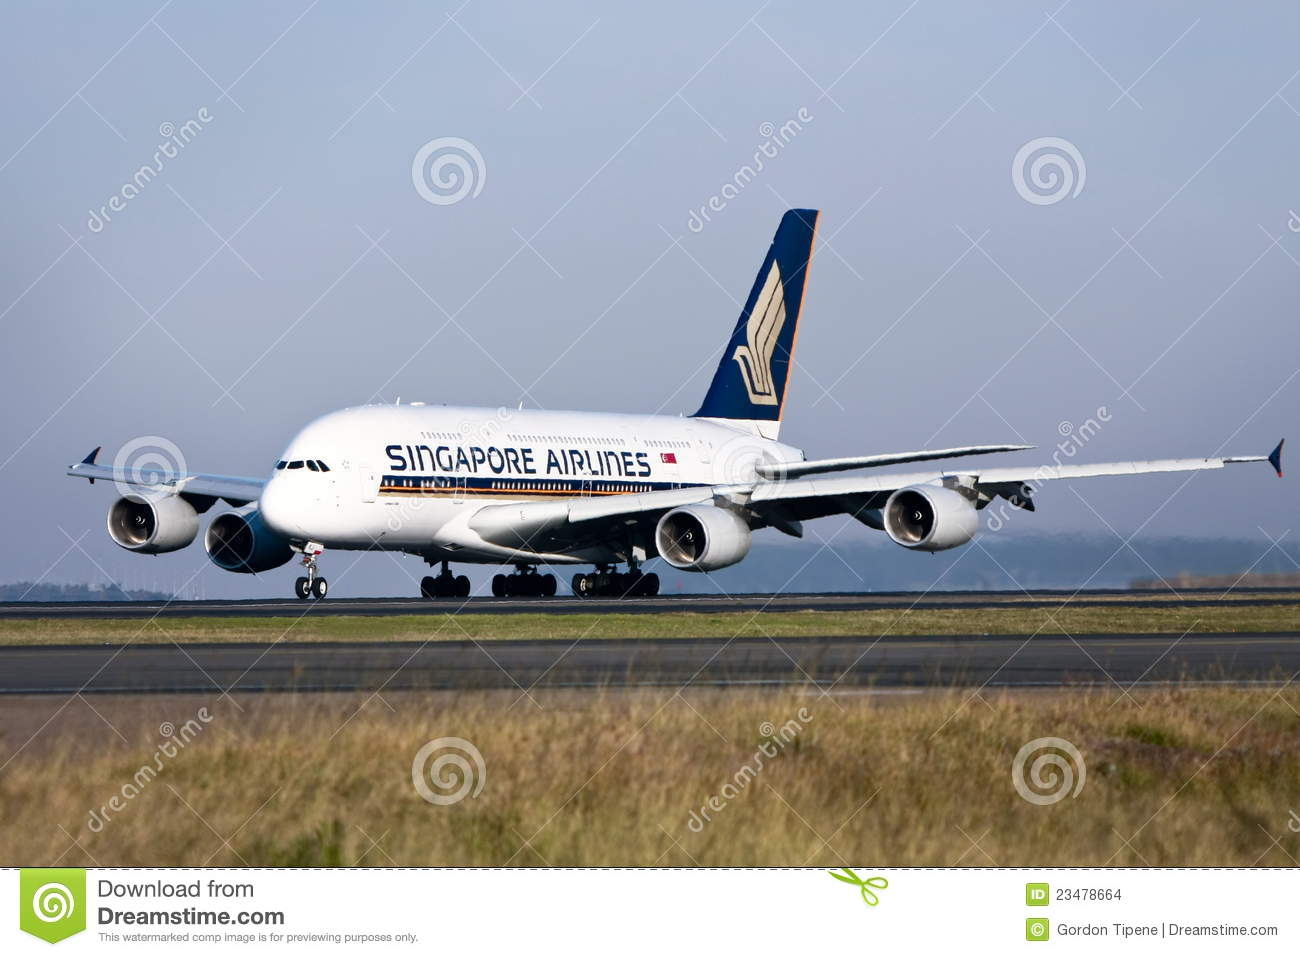 information technology in singapore airlines Singapore airlines salaries trends 168 salaries for 48 jobs at singapore airlines in singapore salaries posted anonymously by singapore airlines employees in singapore.